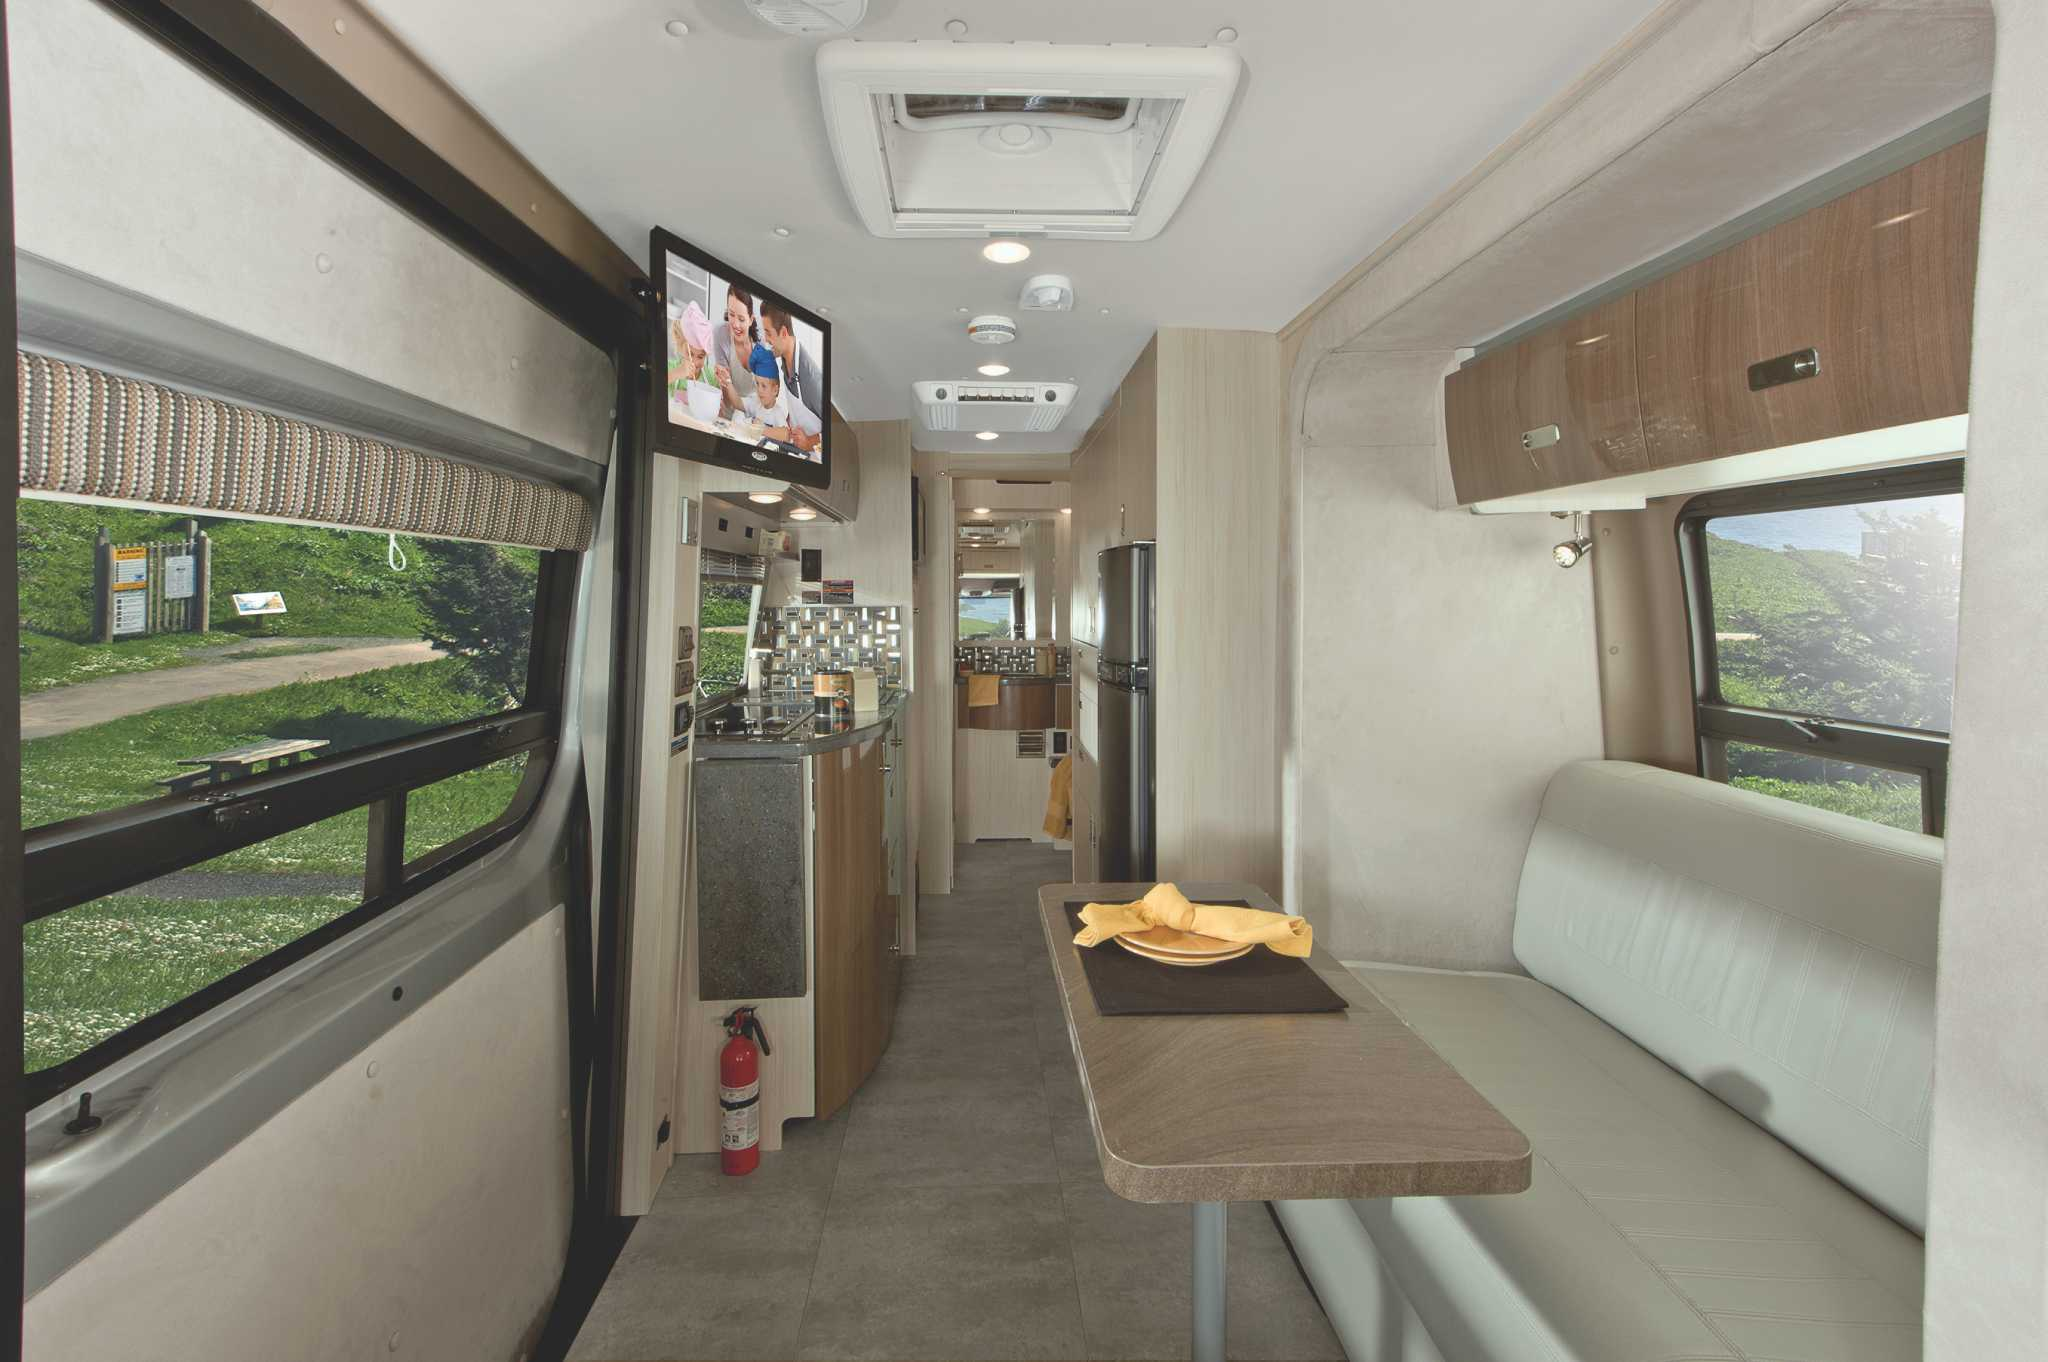 2016 Mercedes Benz Sprinter This Van Is Fit For Up Fit